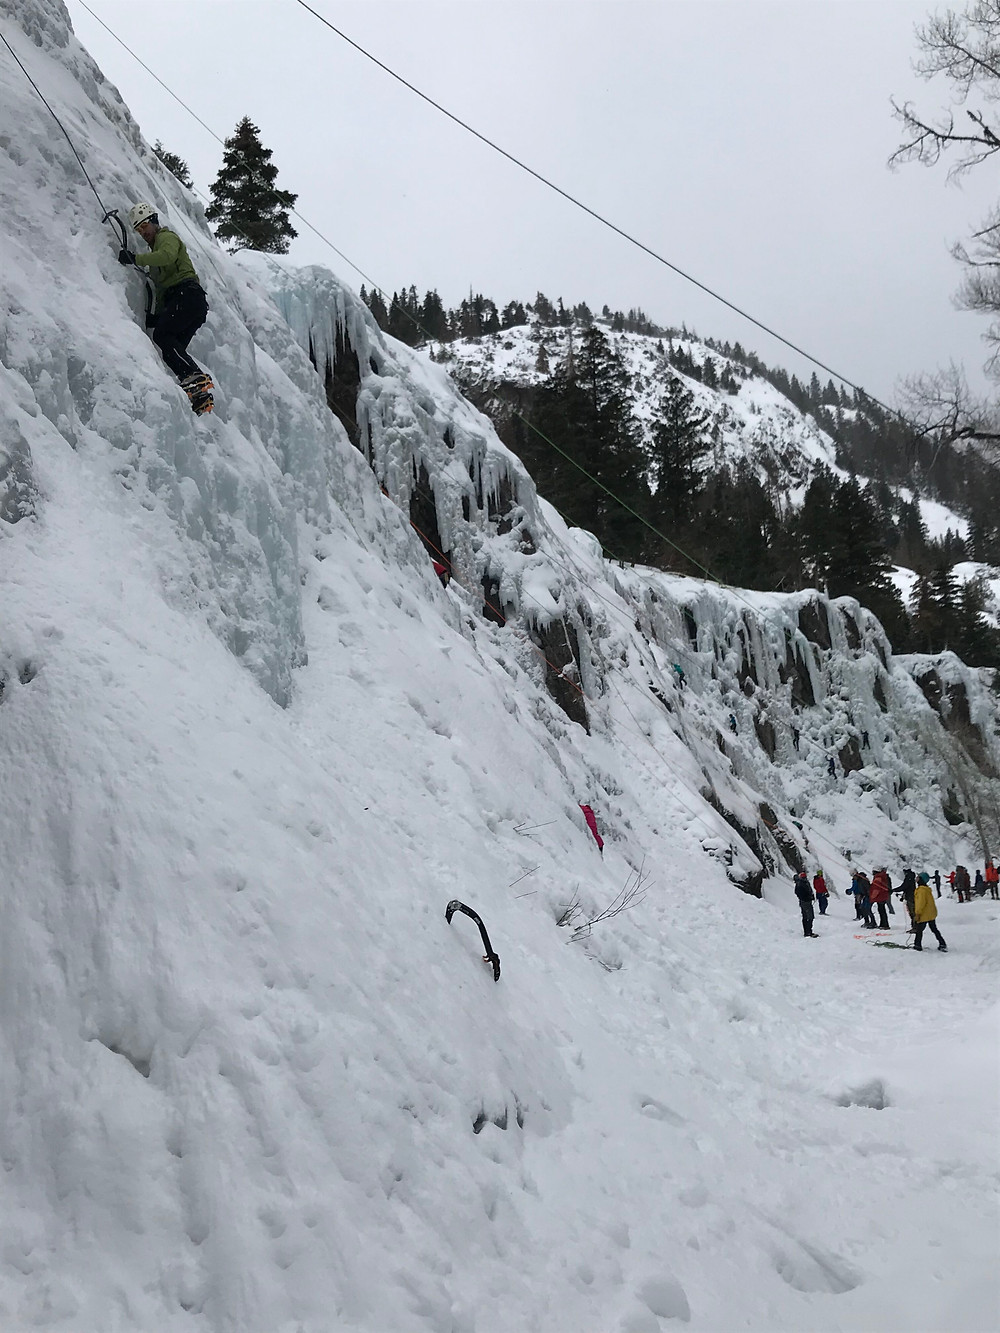 Ice climbing requires teamwork!